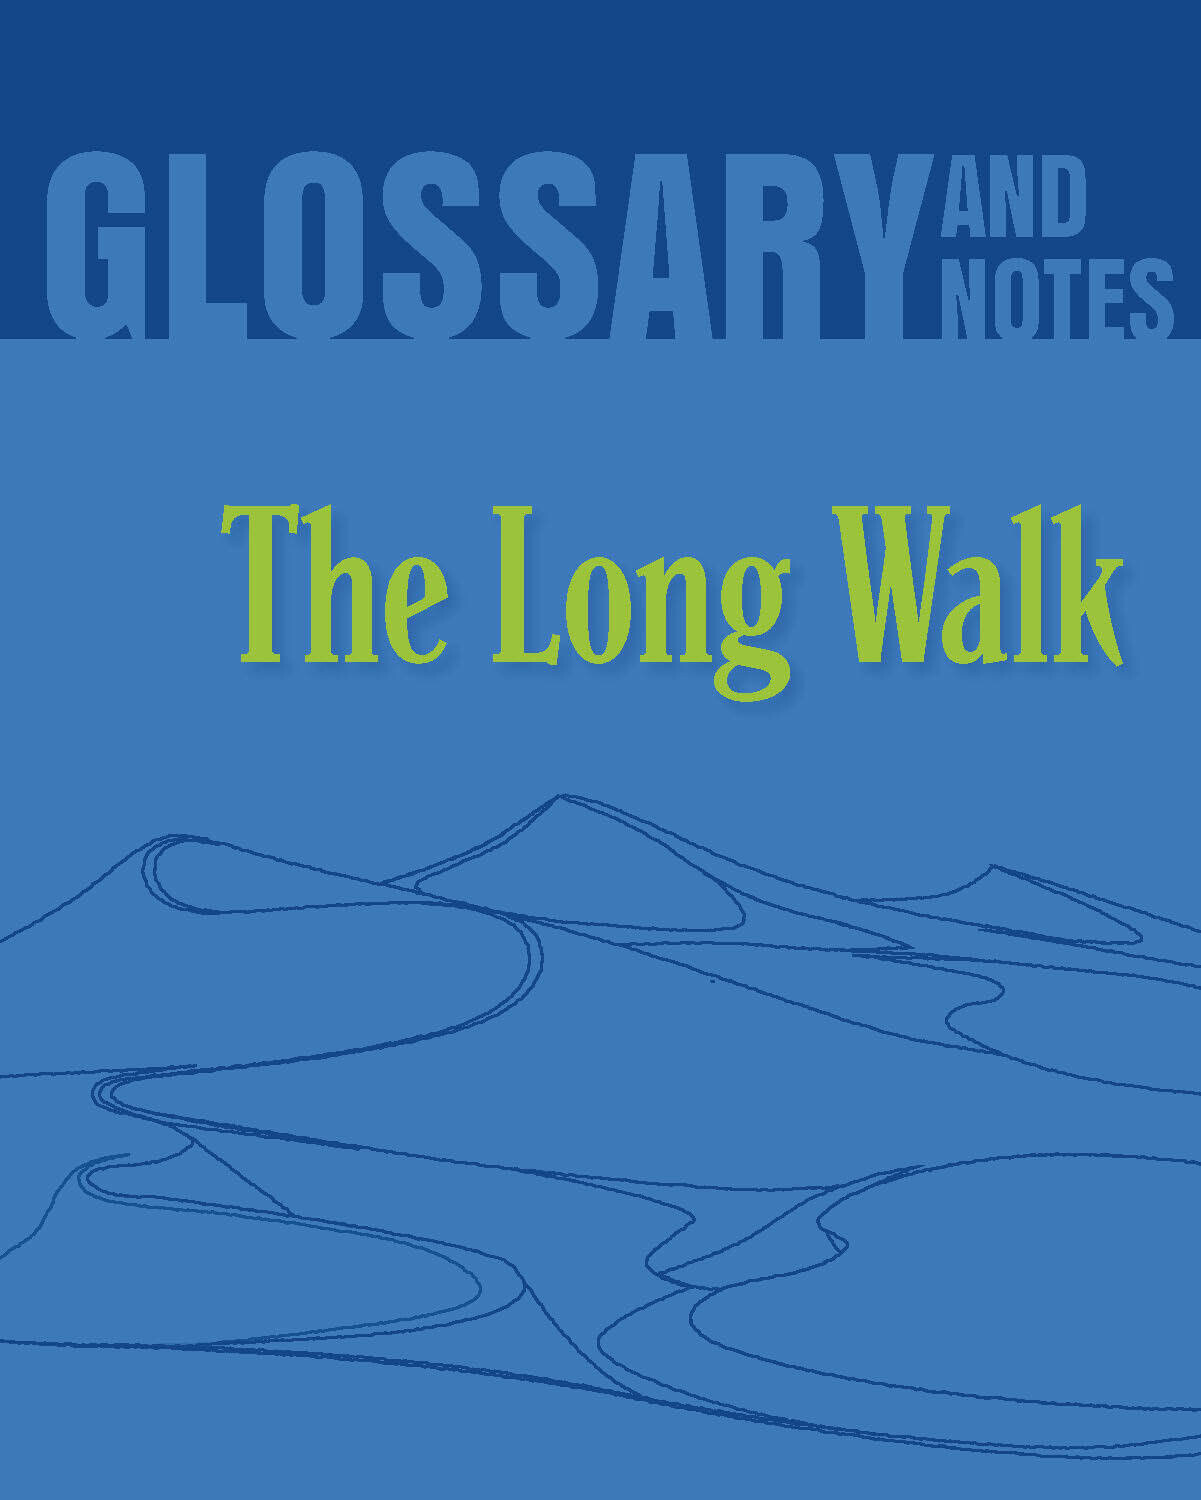 Glossary and Notes: The Long Walk